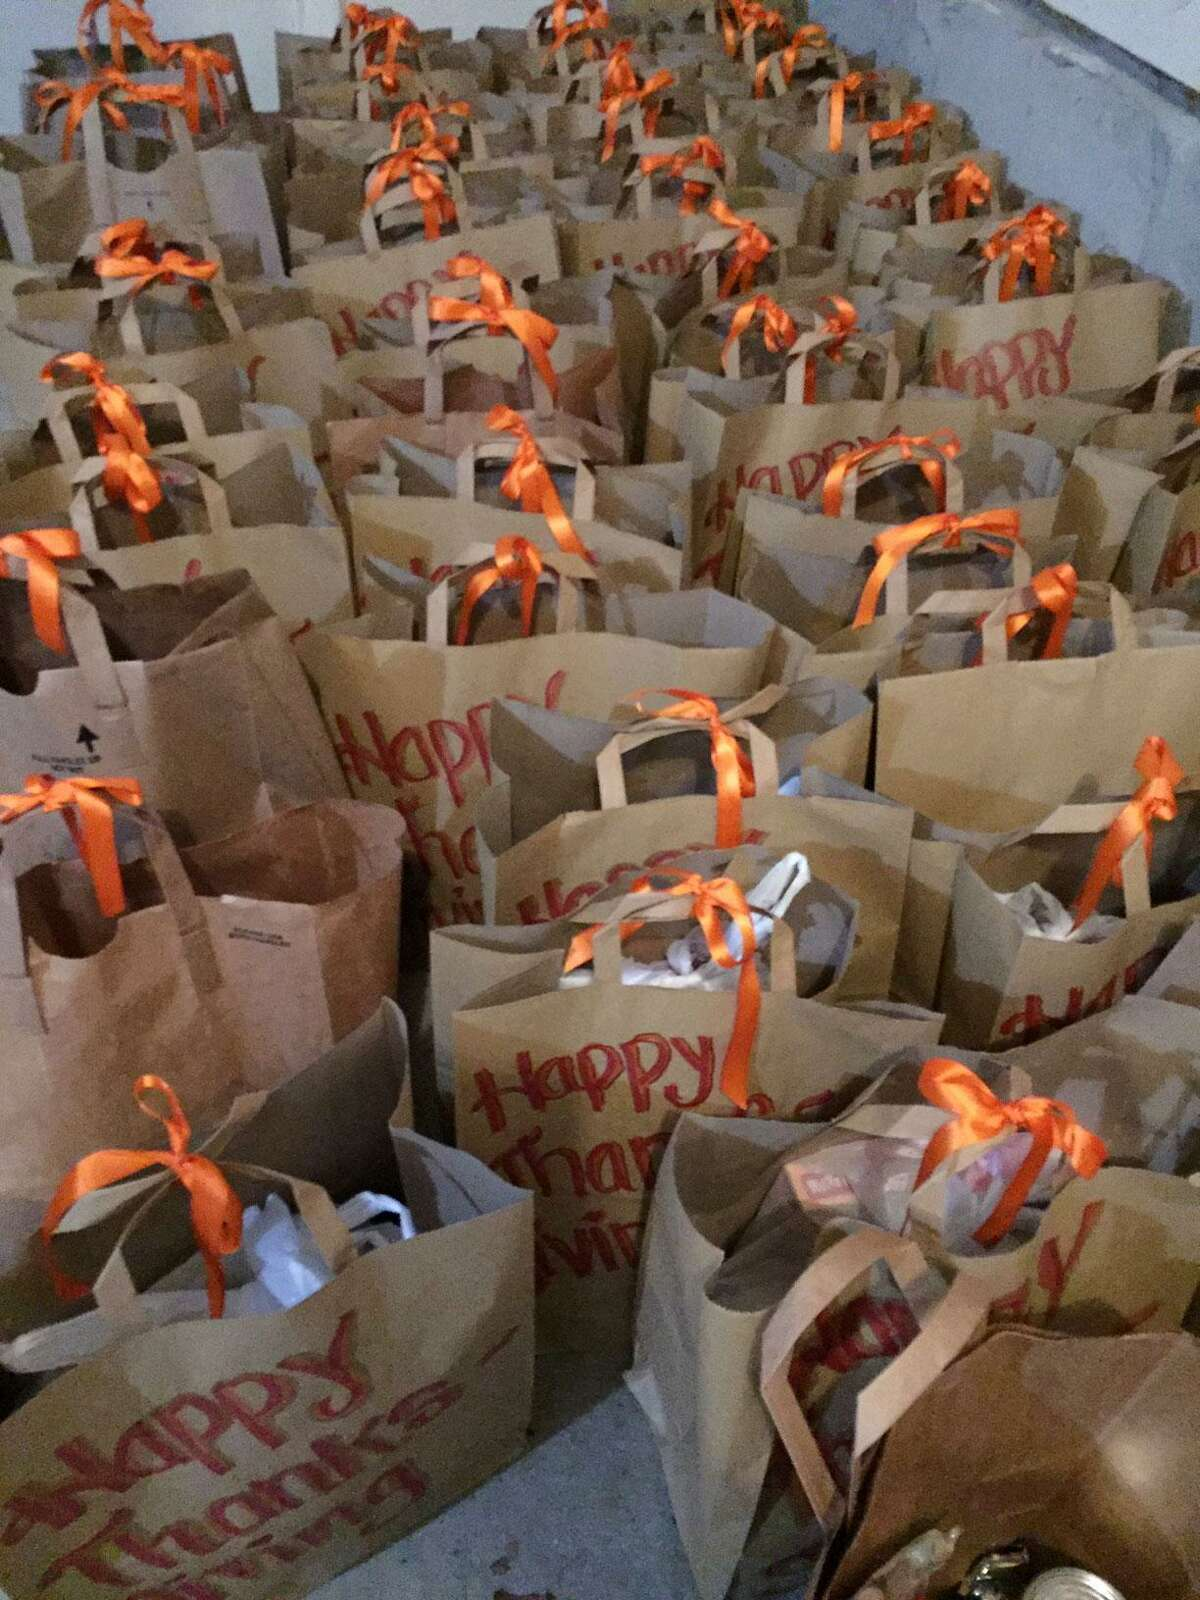 Toni Boucher of Wilton has collected 400 bags of Thanksgiving side dish fixings to go along with 500 donated turkeys, and needs 100 more by Saturday, Nov. 21, to meet her goal.